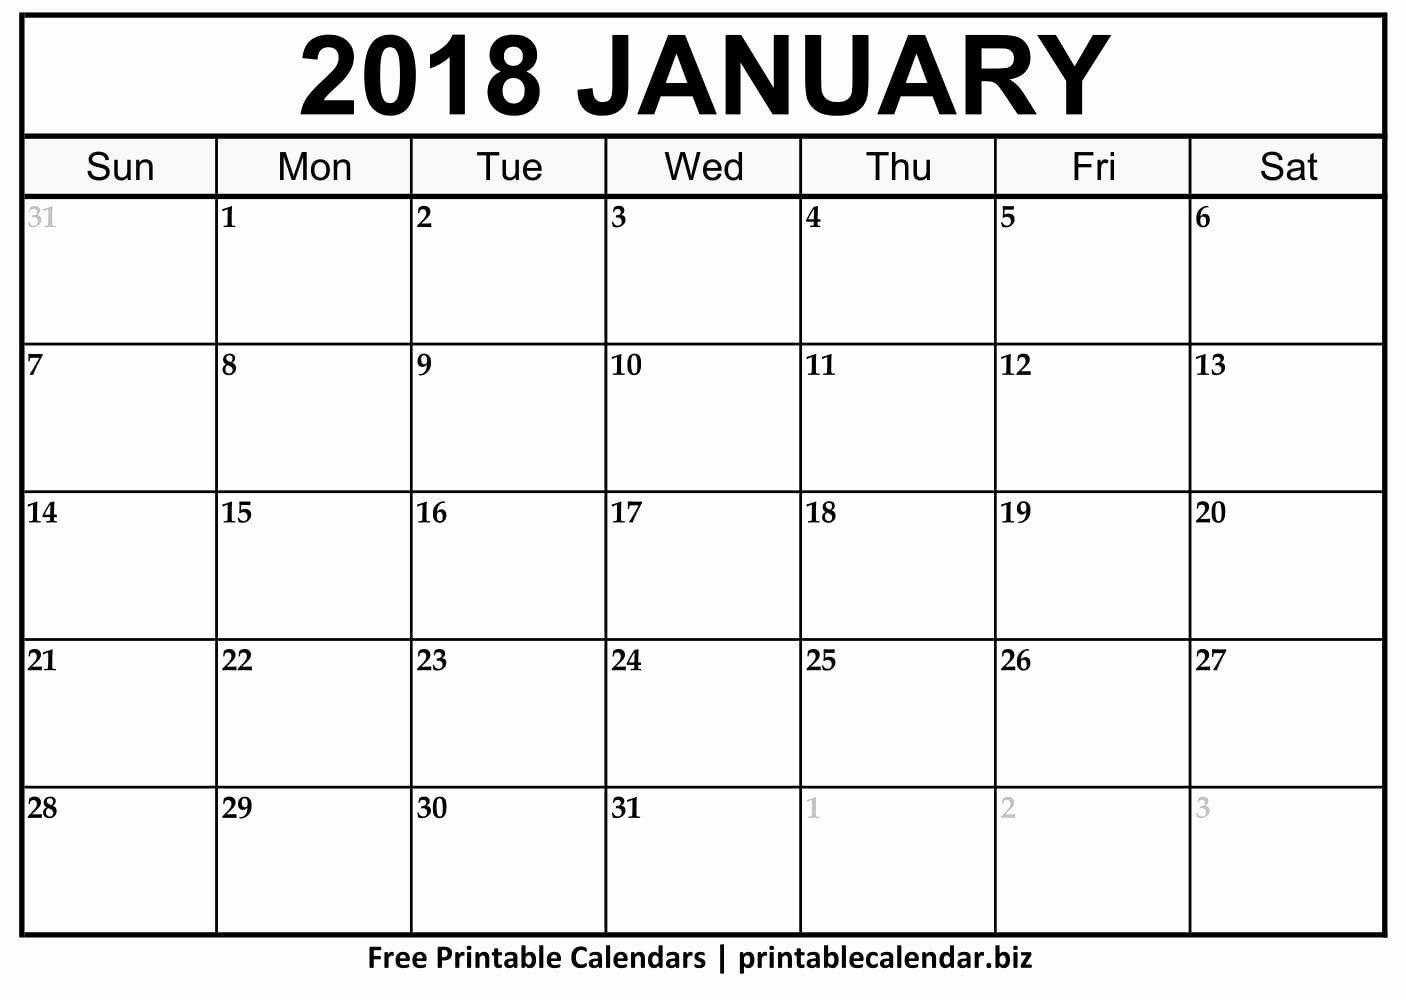 Free Printable 2018 Calendar Templates Best Of Printable 2018 Calendar 123calendars